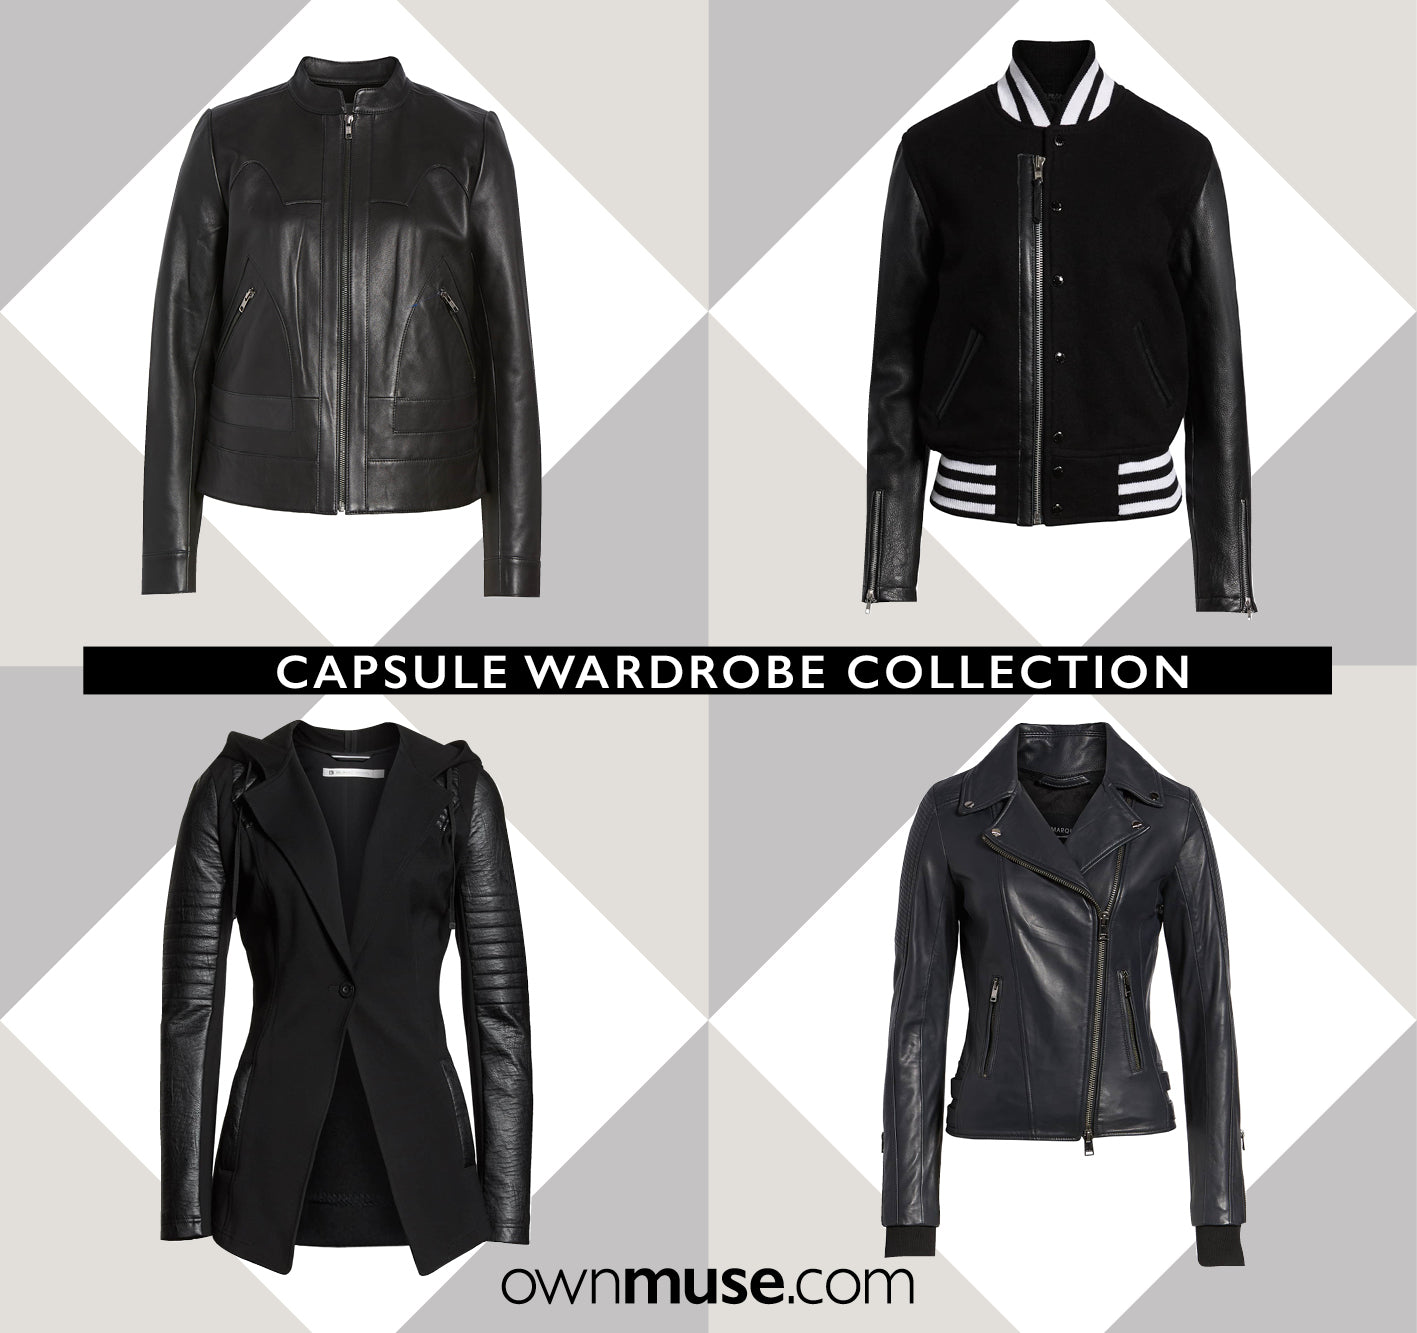 Capsule Wardrobe Collection - Black jackets